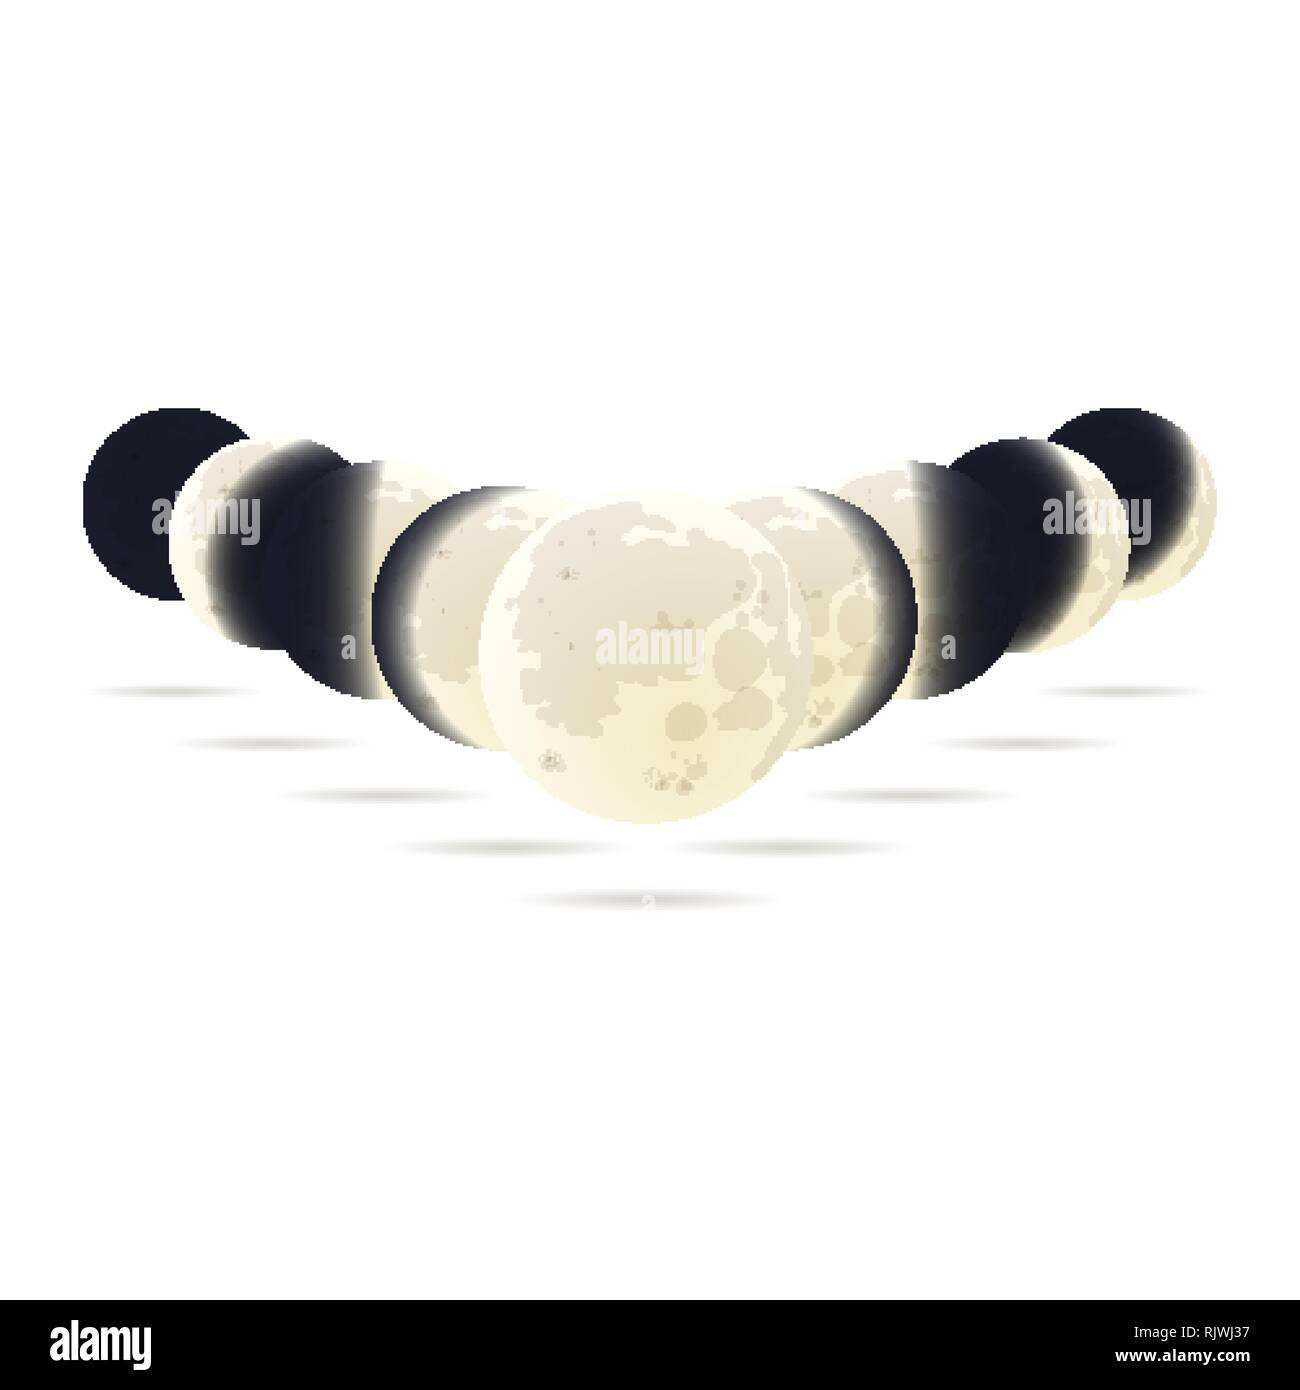 Moon phases concept with different lunar positions - Stock Image